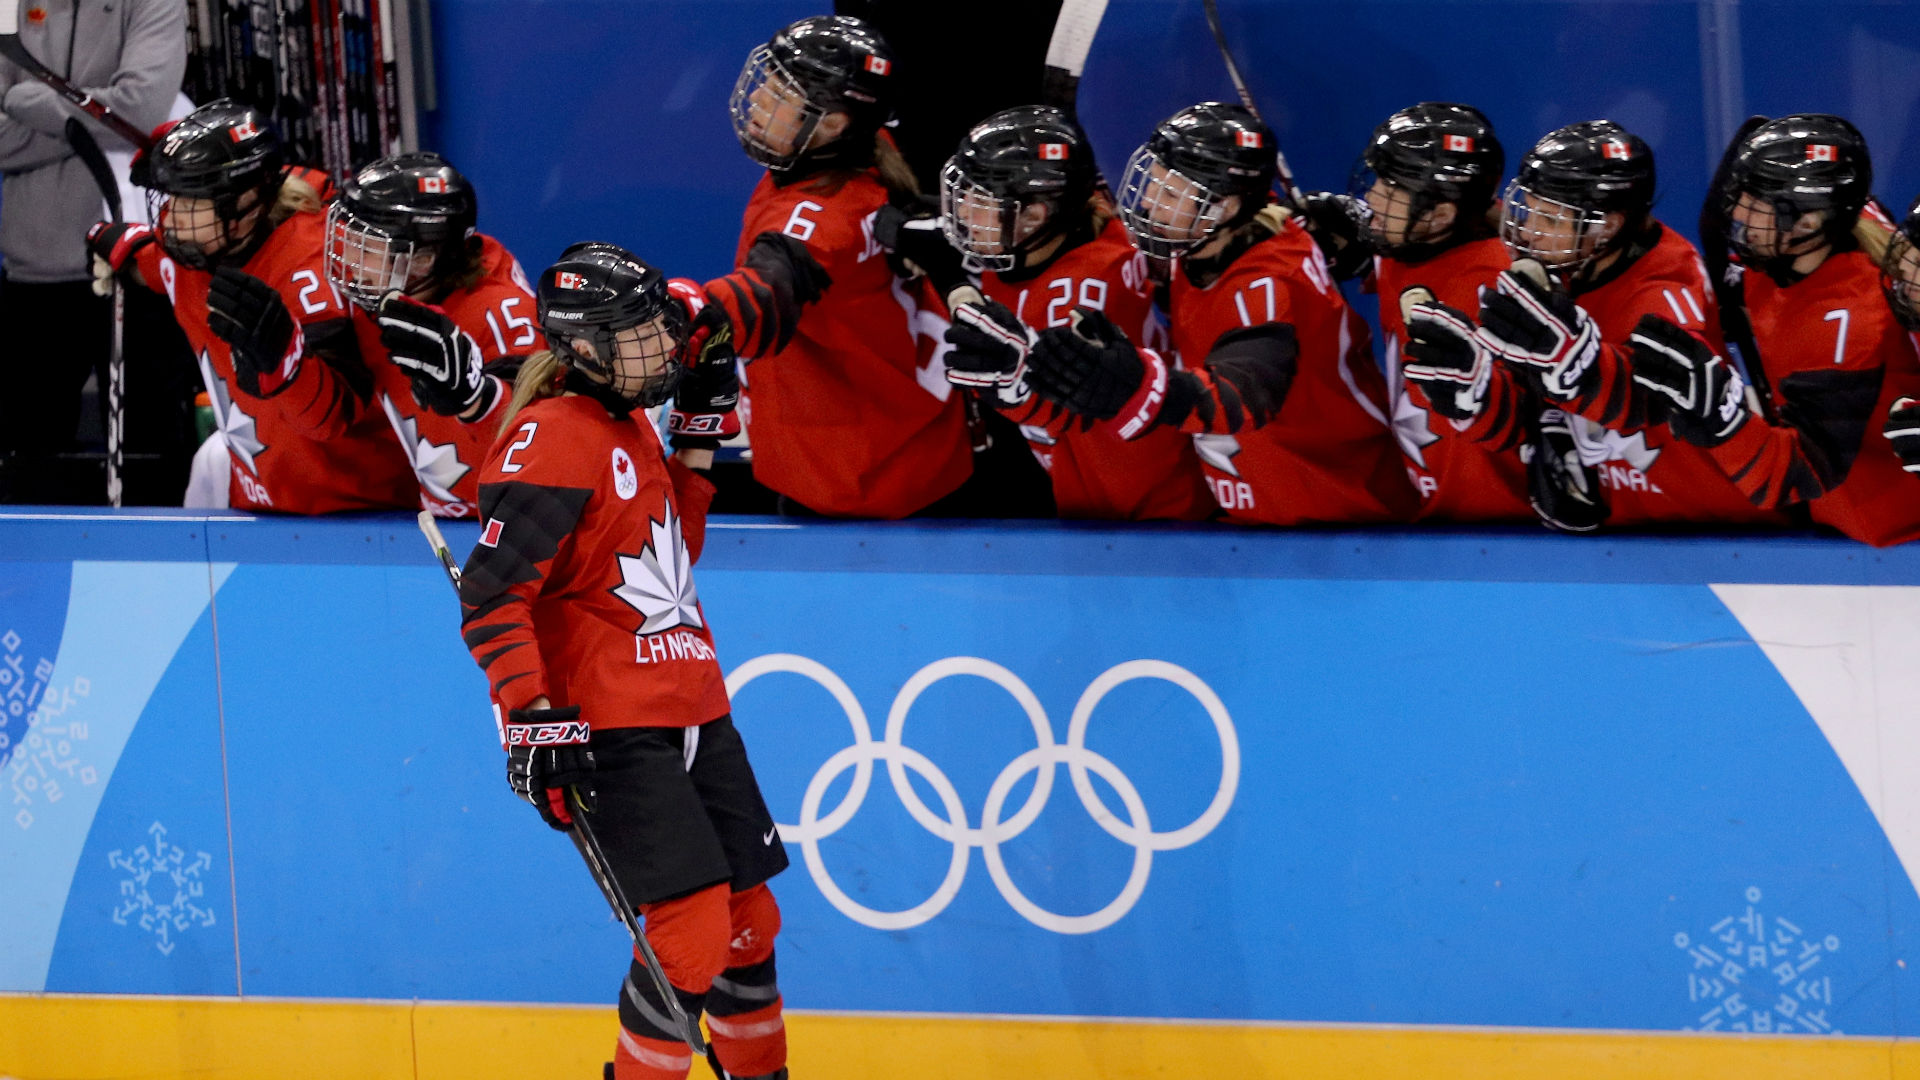 Olympic Women's Hockey Doesn't Need to be Changed